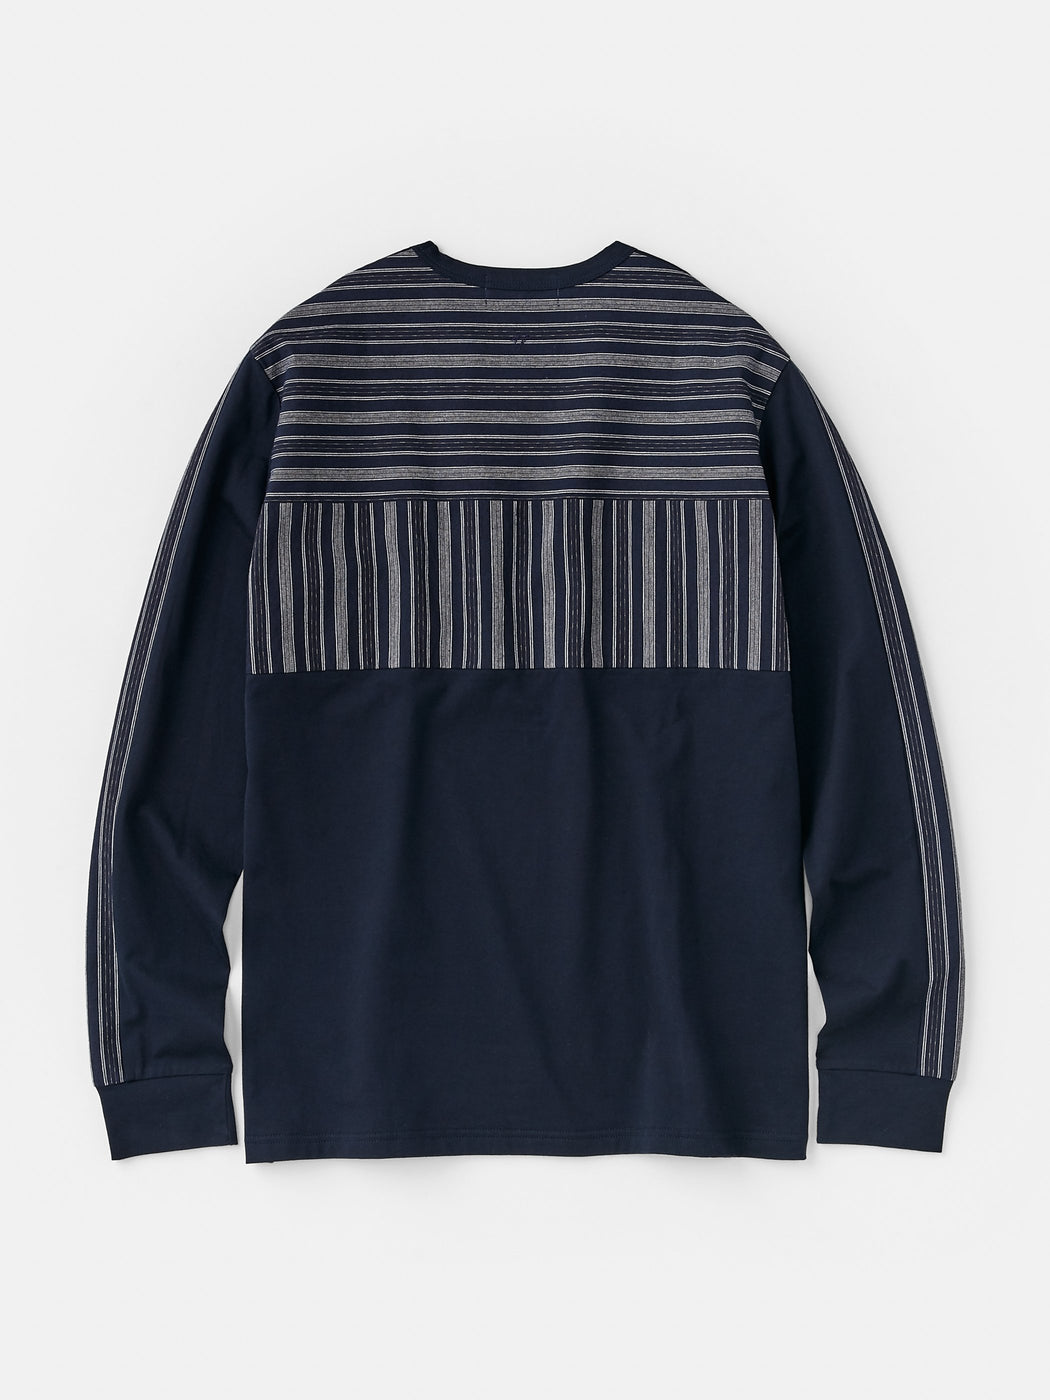 ALOYE Kamedajima Fabrics Men's Long Sleeve T-shirt Navy-Kamedajima Stripe